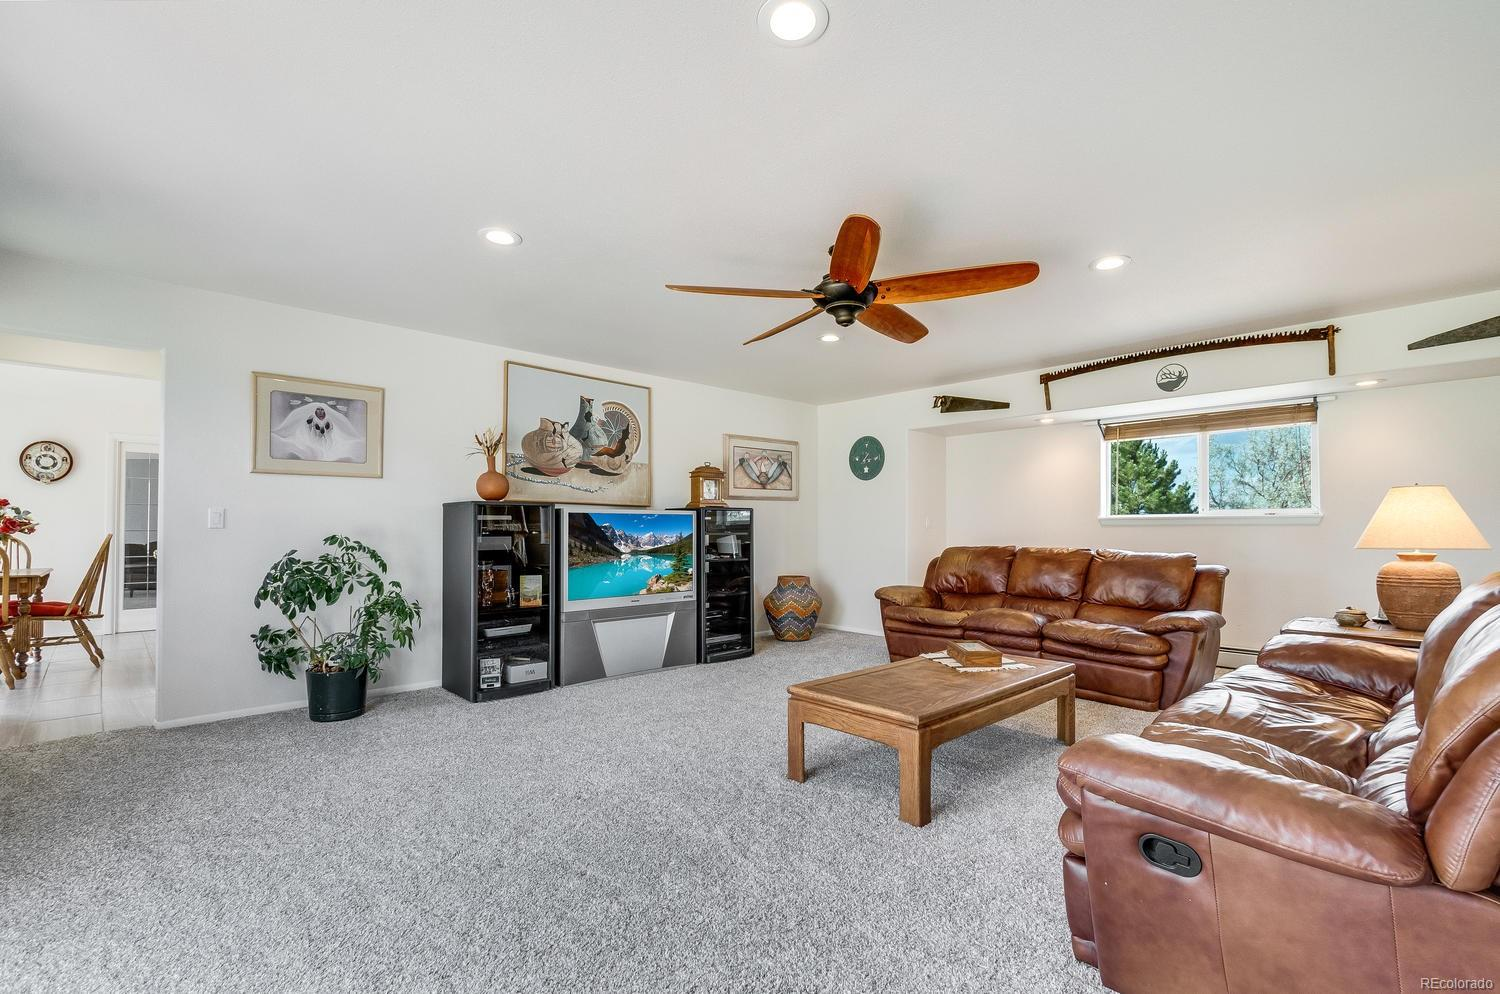 Family Room with access to Study or can be used as Mother-in-law bedroom on the opposite side of the home from the other 3 bedrooms.